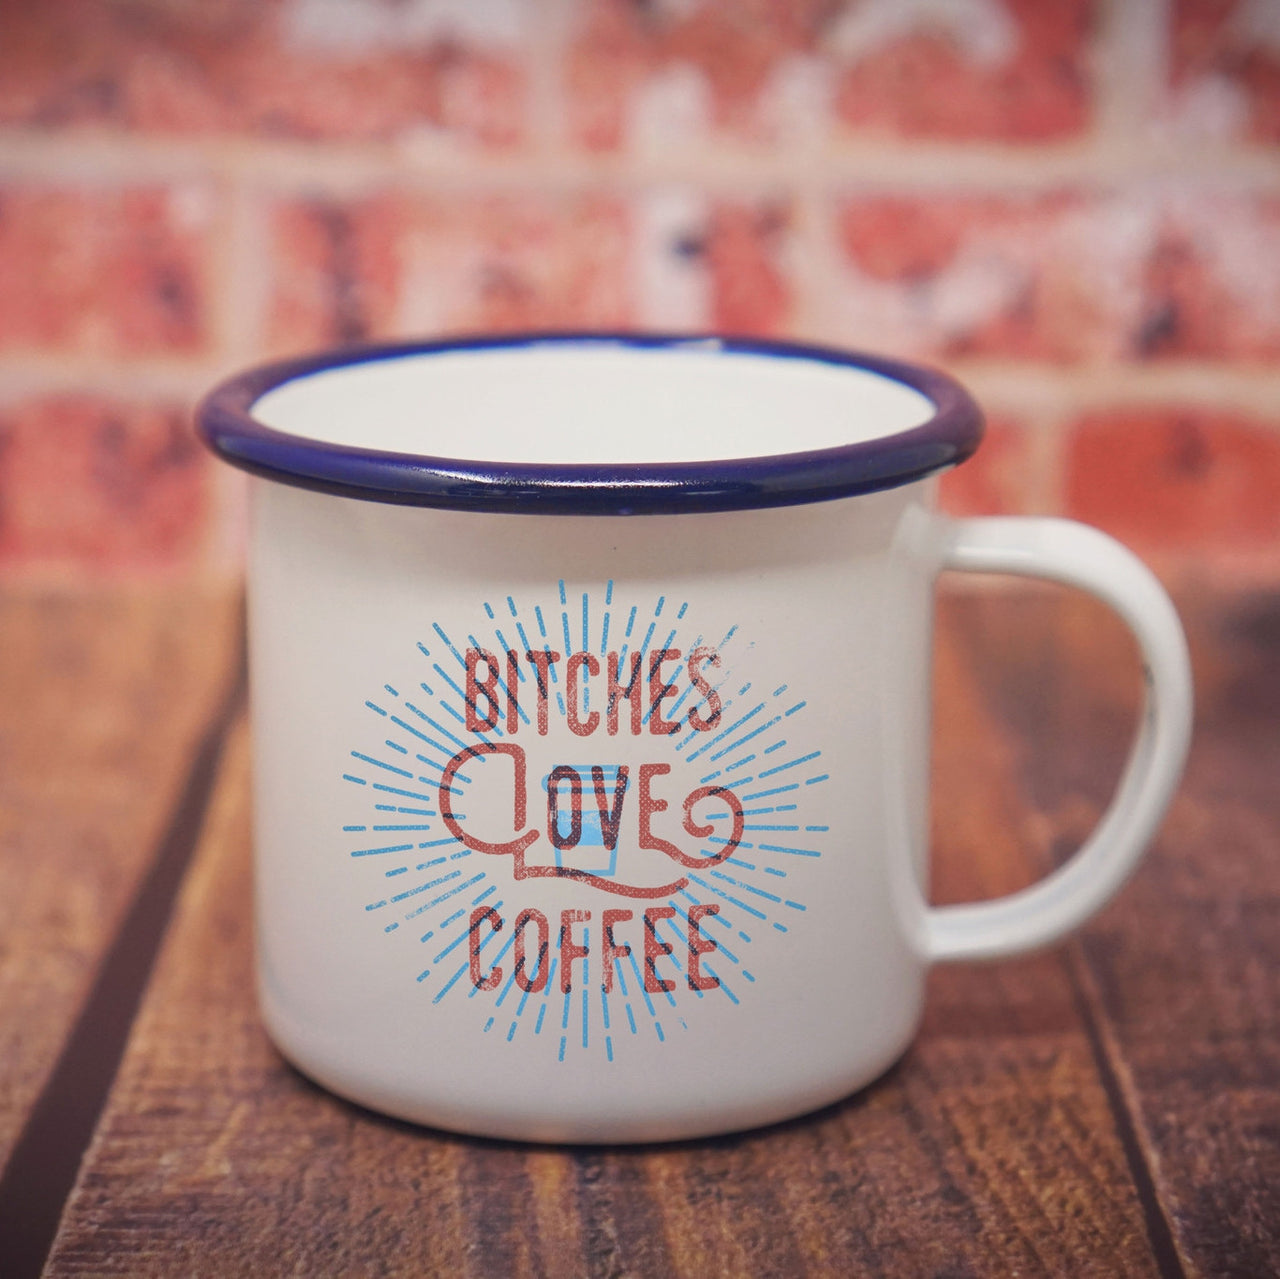 Bitches Love Coffee: Cool Enamel Mug for Coffee Lovin' Bitches-Enamel Co.